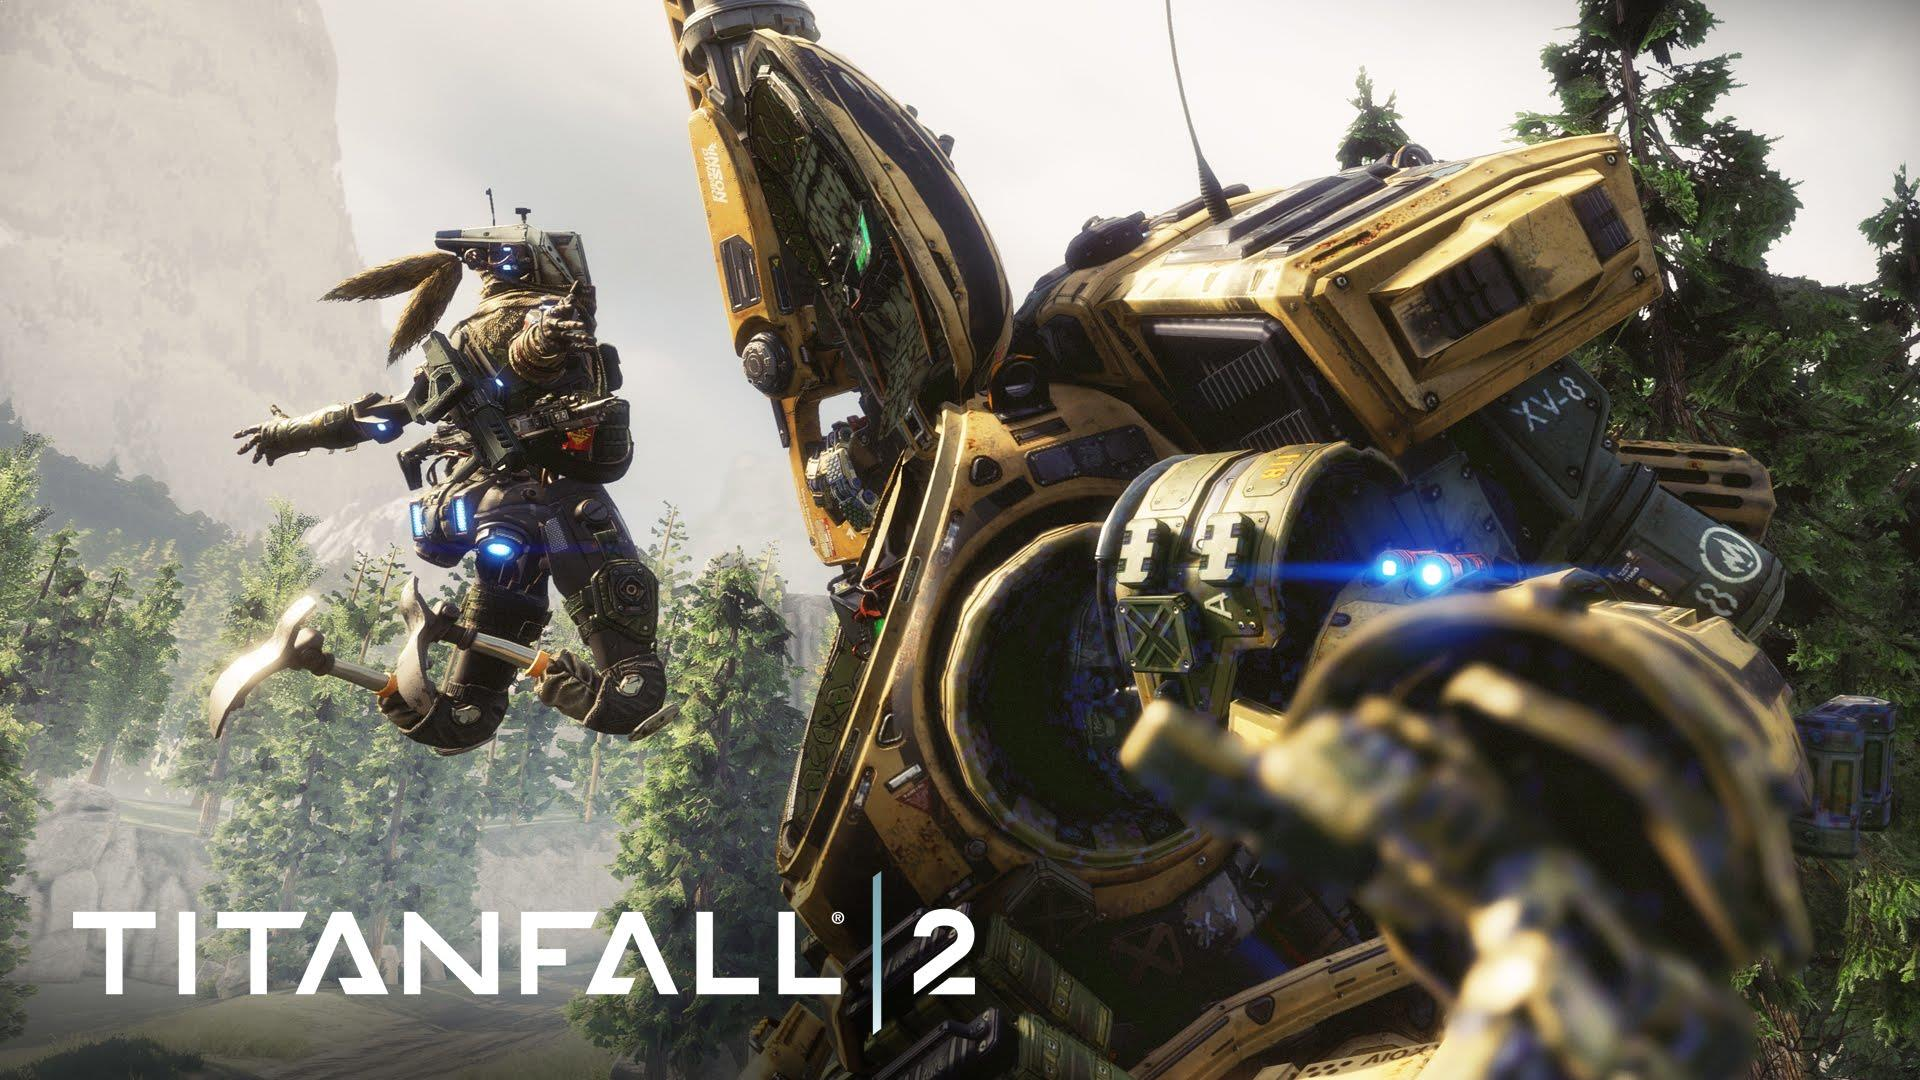 Titanfall 2 won't hide gameplay content in a Season Pass